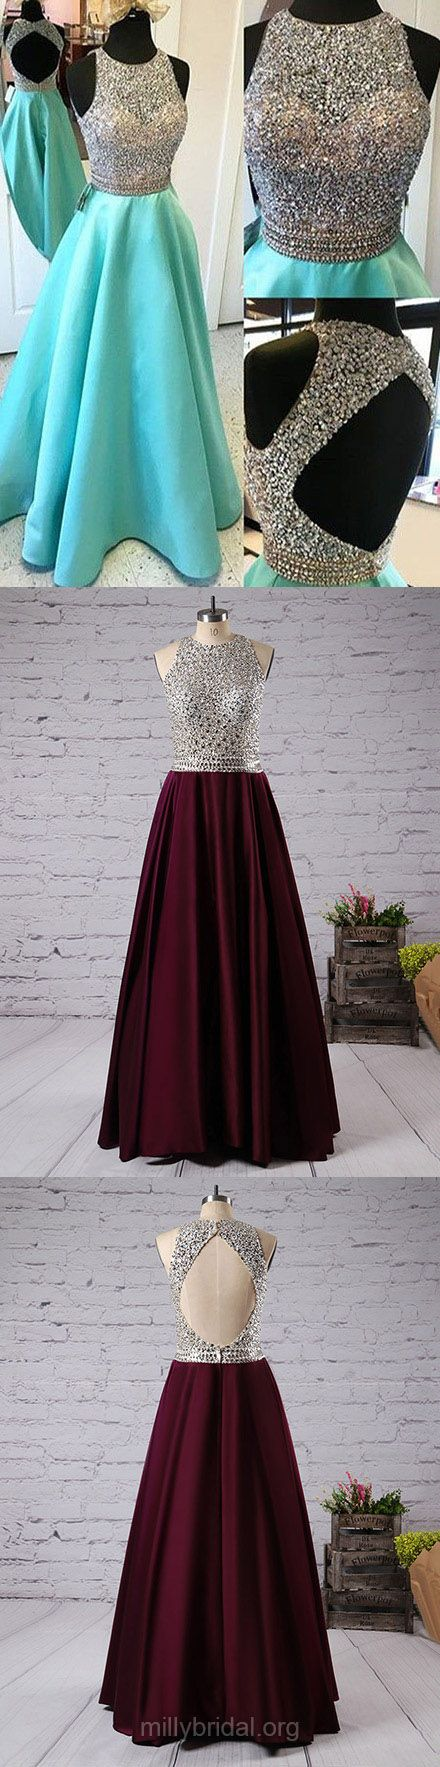 Long Prom Dresses, 2018 Prom Dresses For Teens, Unique A-line Prom Dresses Scoop Neck, Satin Prom Dresses Tulle with Beading, Open Back Prom Dresses Modest